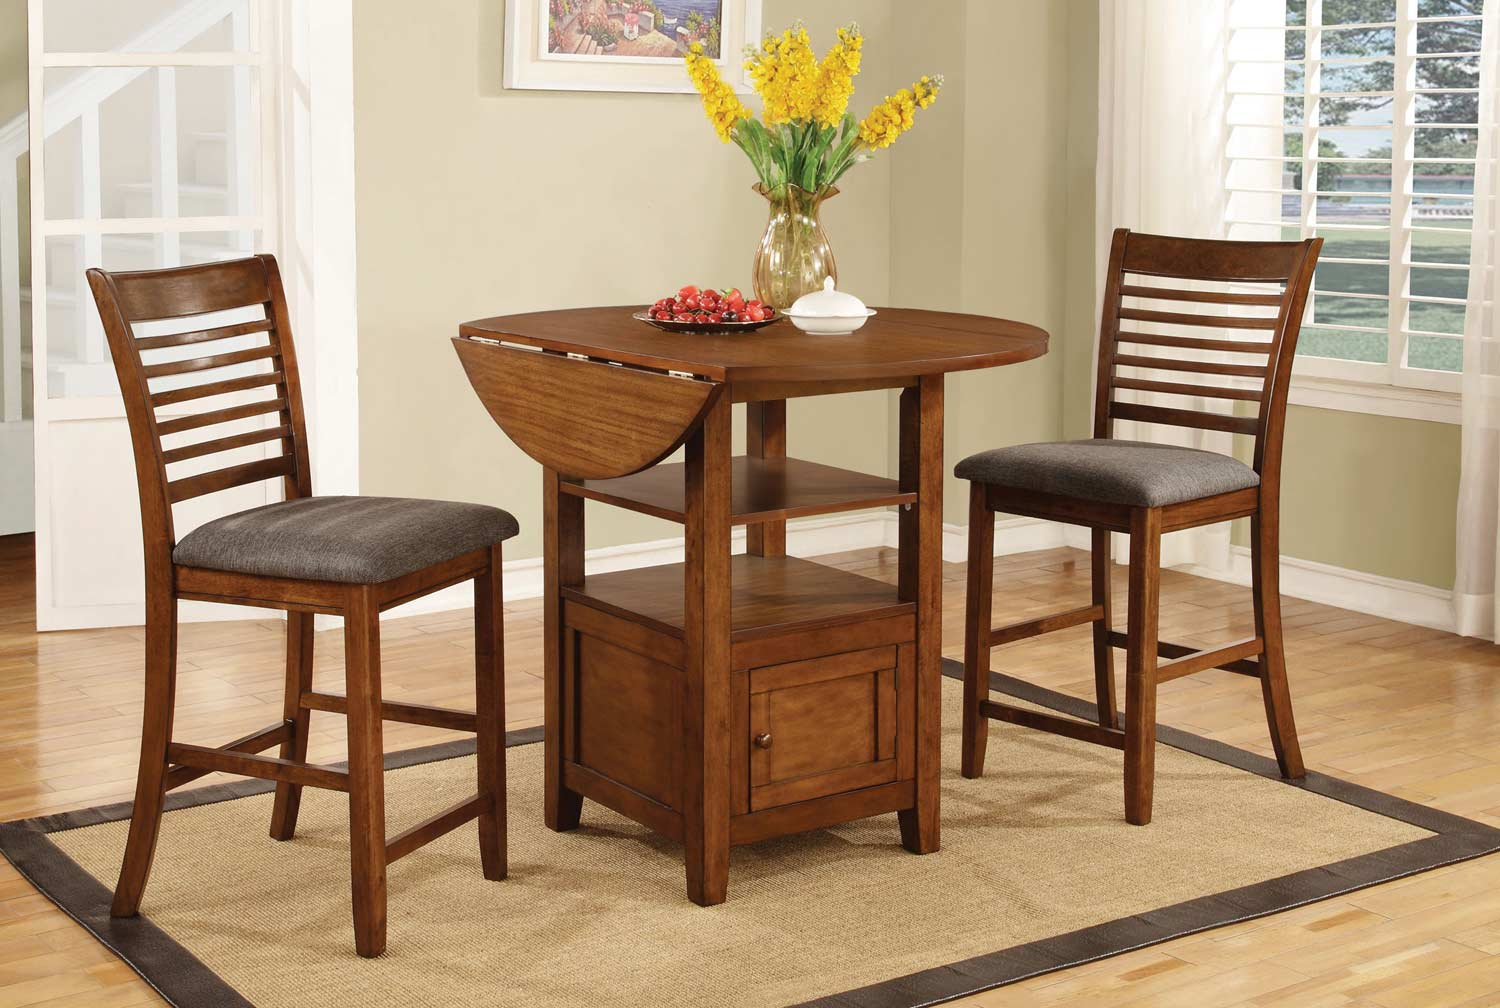 Coaster Stockton Drop Leaf Storage Counter Height Collection - Warm Brown